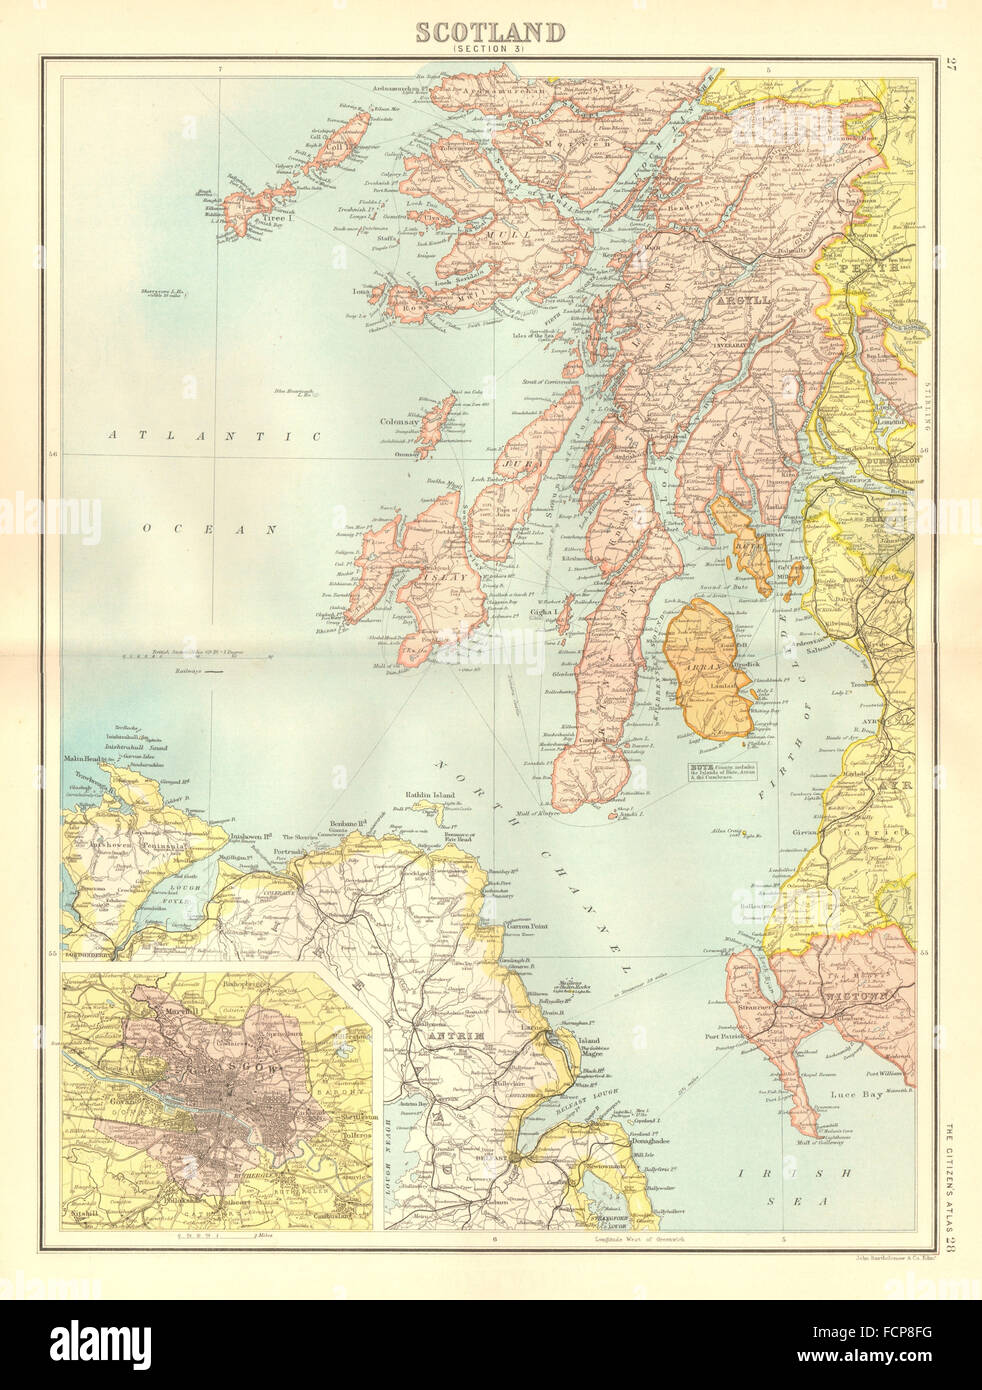 Islay Scotland Map.Argyll Antrim Scotland Sw Islay Jura Arran Bute Kintyre Glasgow